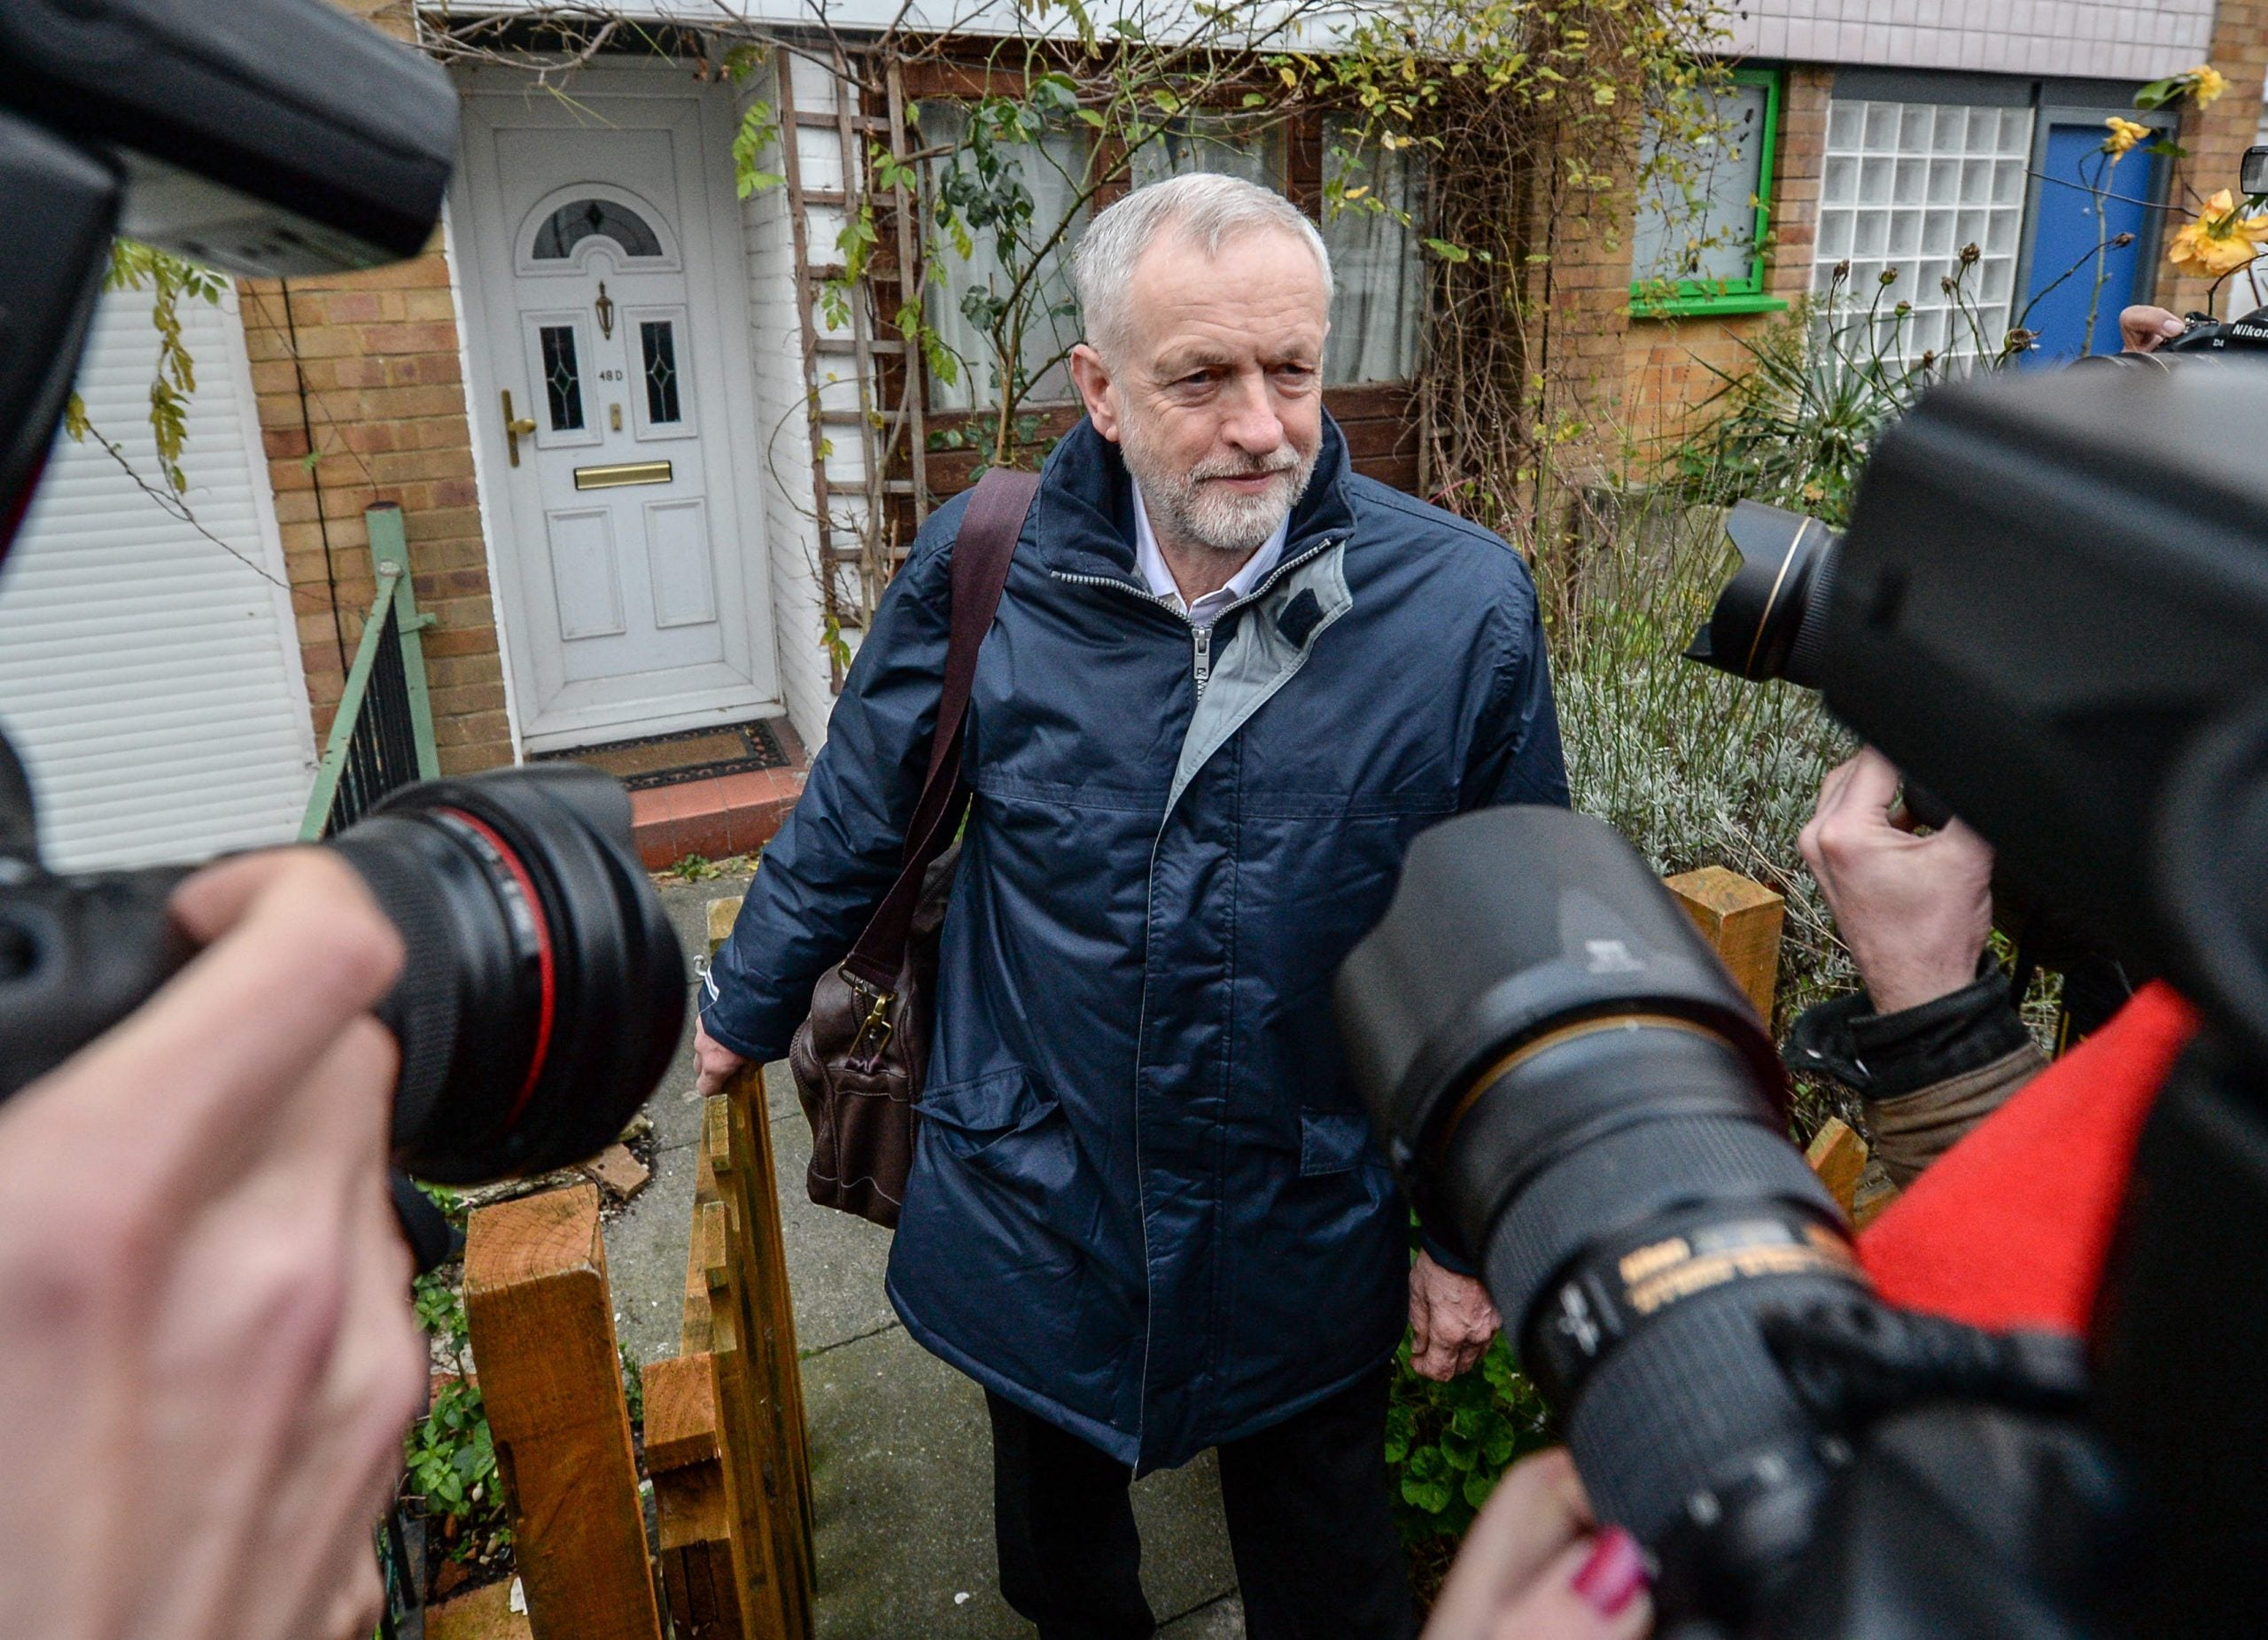 Labour may not be dead yet, but last week shows the party is walking wounded